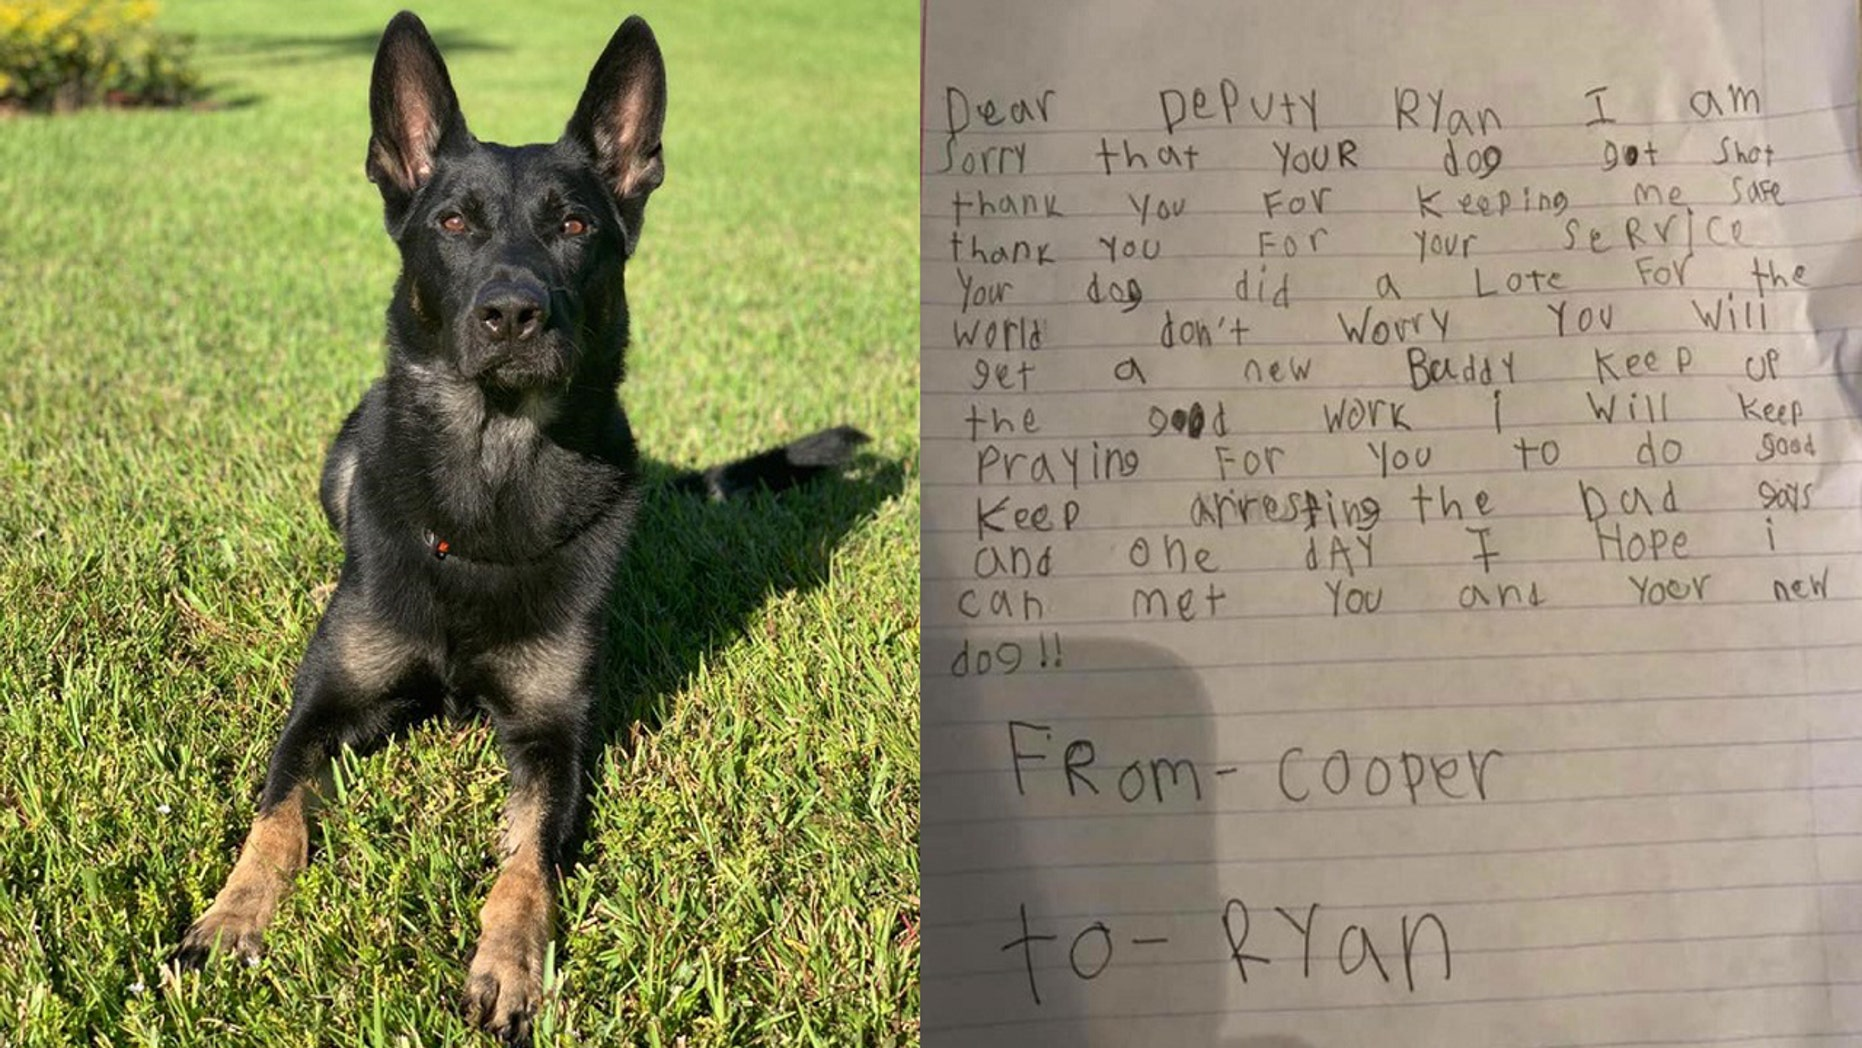 Palm Beach Sheriff's Office K-9 Officer Cigo sacrificed his life to save his fellow officers during a Christmas Eve shooting on Monday. A Florida boy named Ryan penned a letter shared on Thursday to the deputy to whom Cigo belonged.